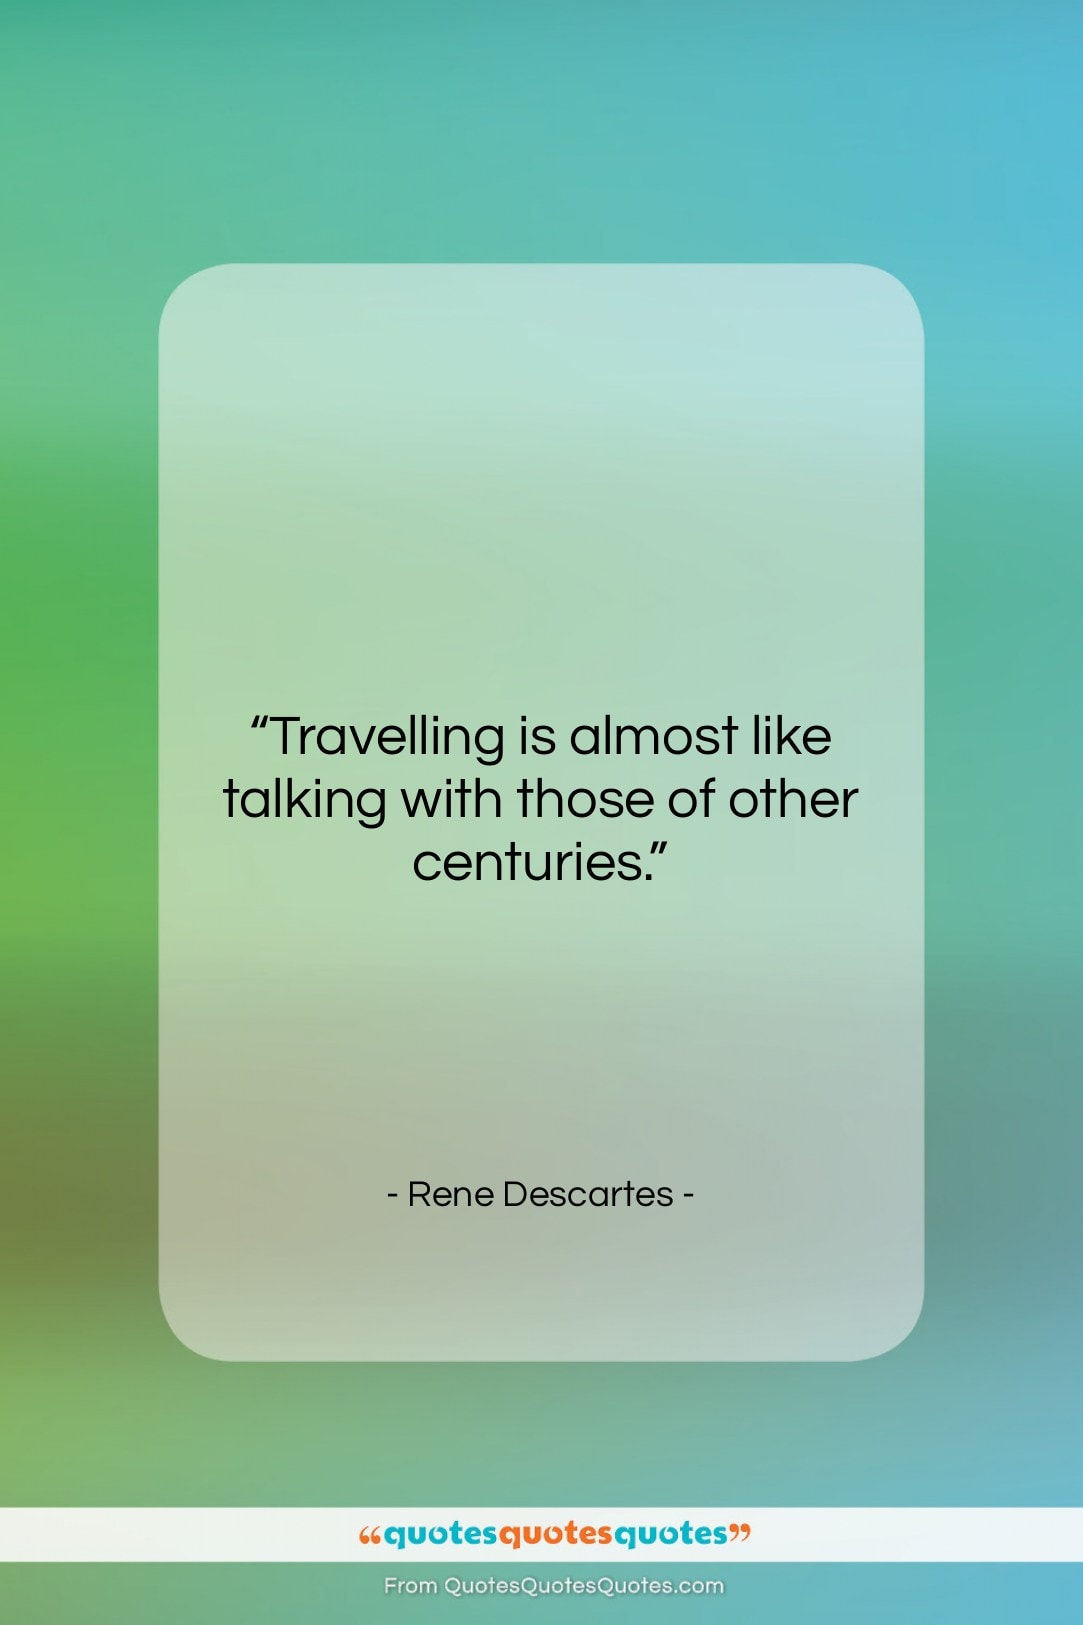 """Rene Descartes quote: """"Travelling is almost like talking with those…""""- at QuotesQuotesQuotes.com"""